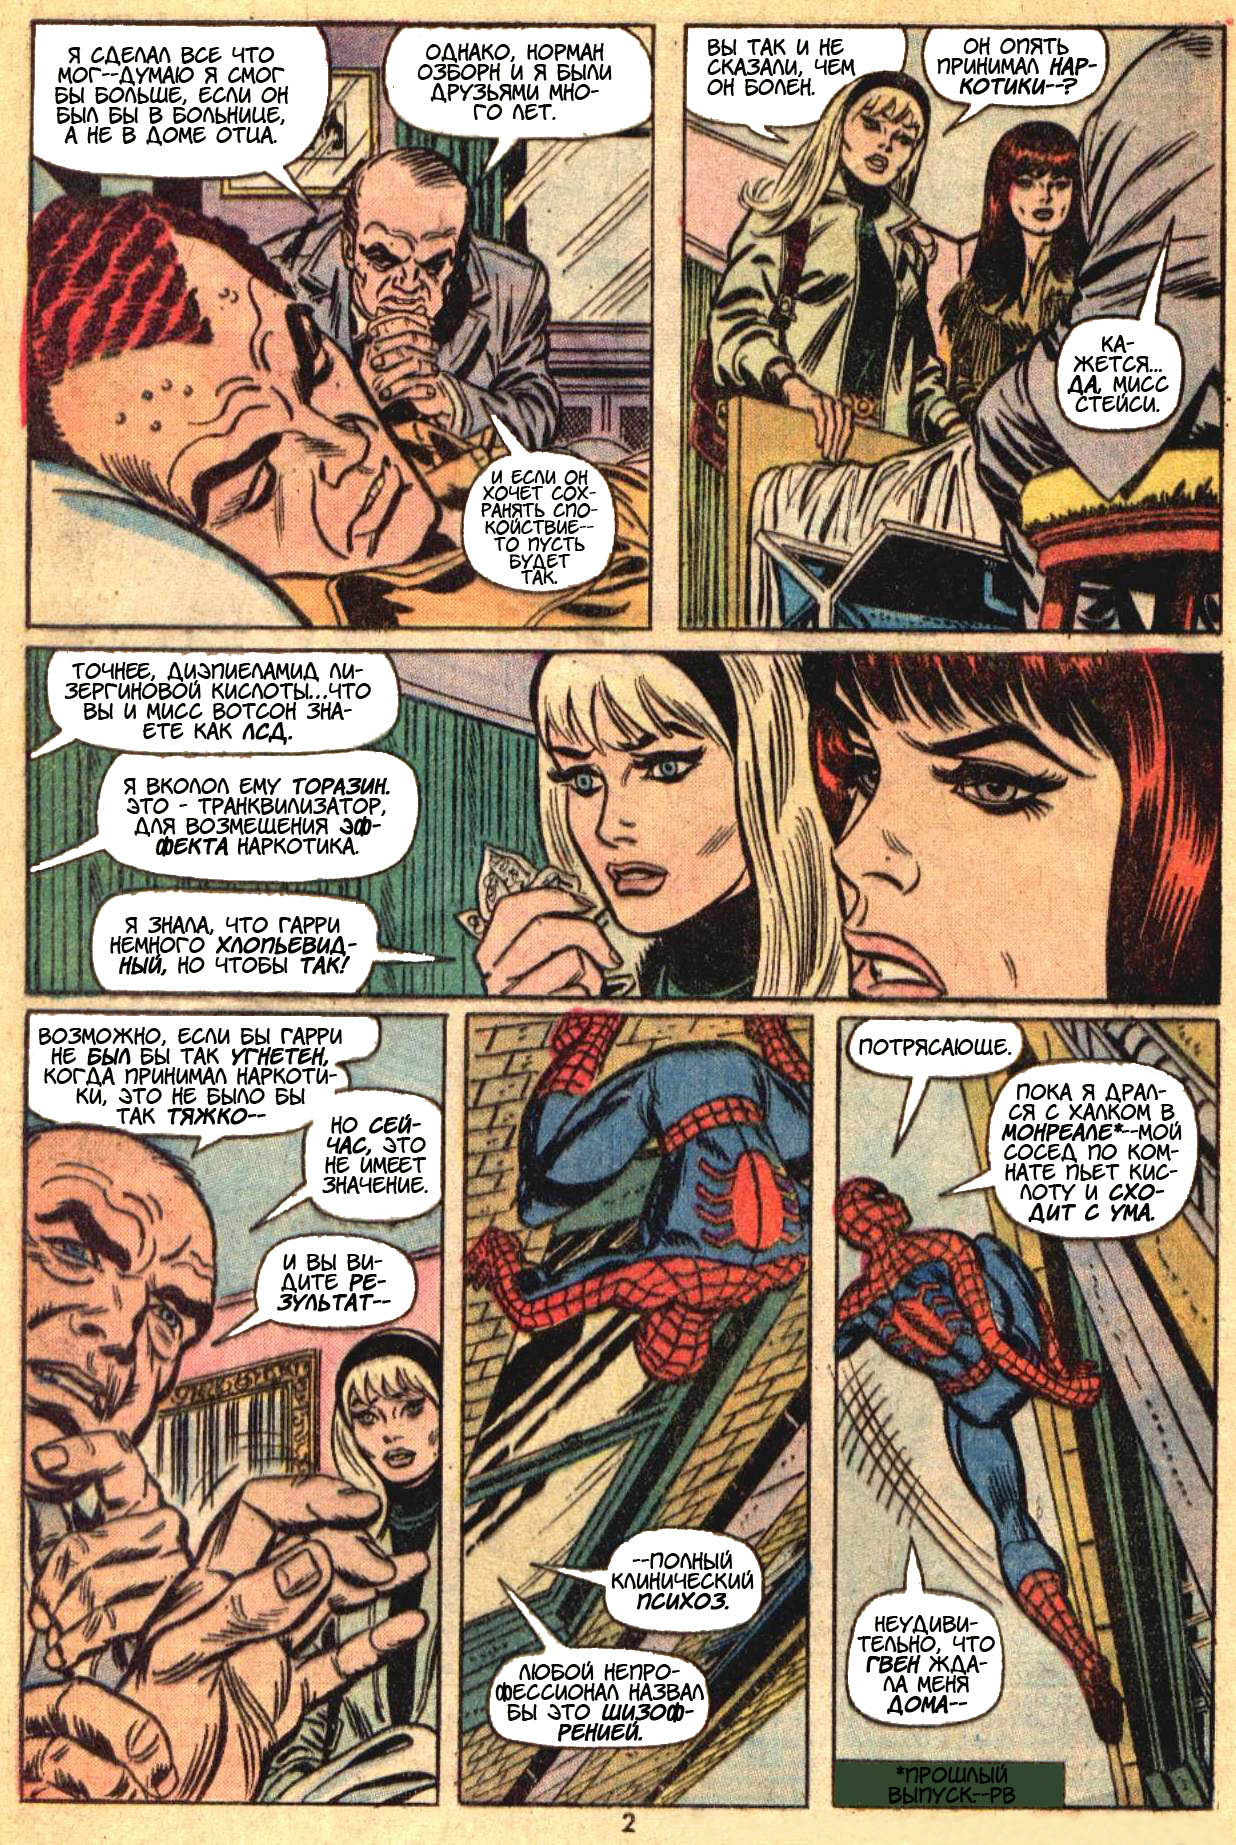 Gwen stacy spiderman comic